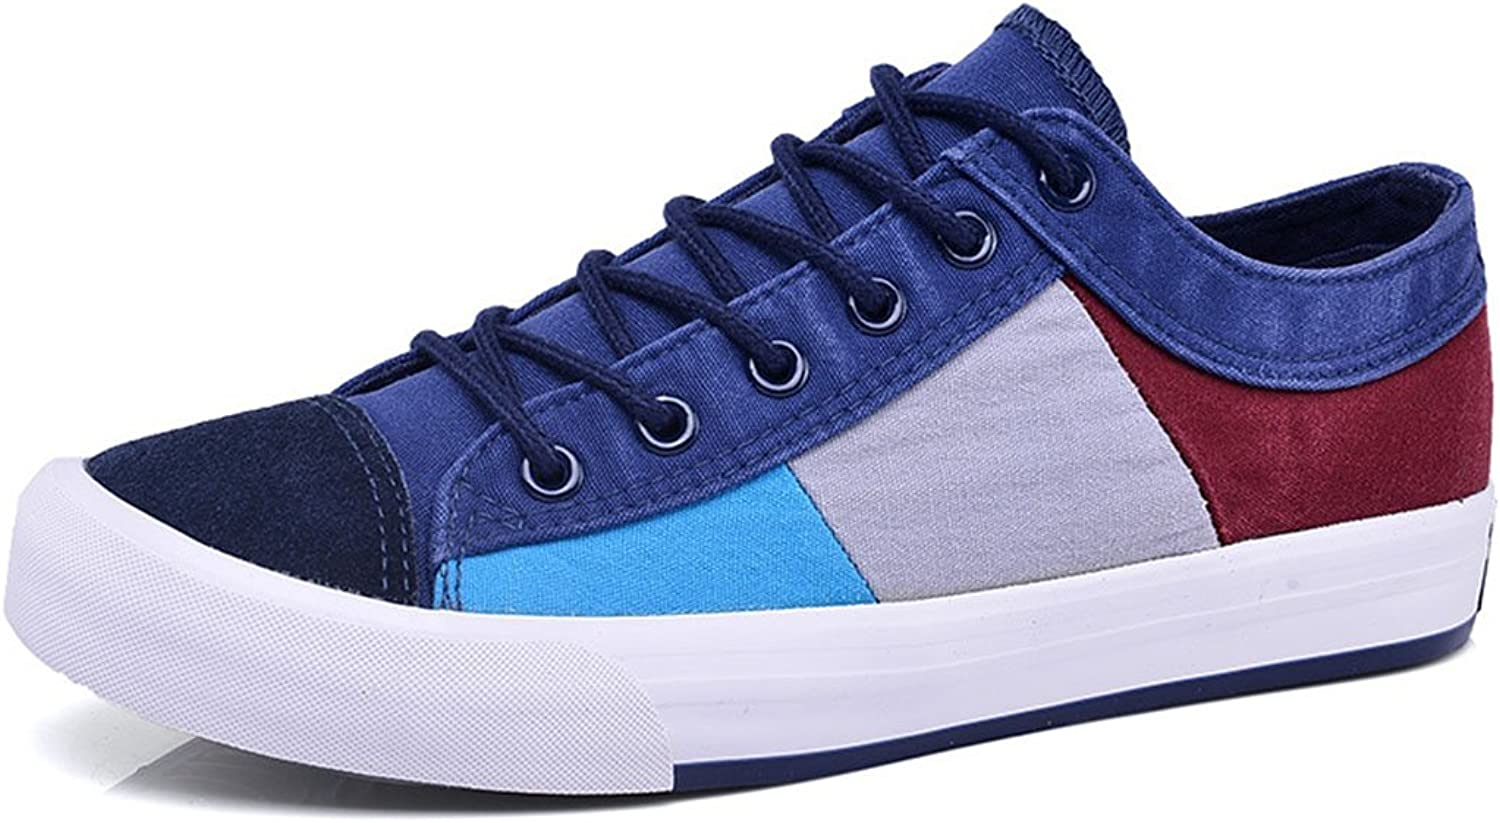 GAOLIXIA Men's Canvas shoes Fashion Breathable Casual shoes Flat Sports shoes Outdoor for Walking Casual